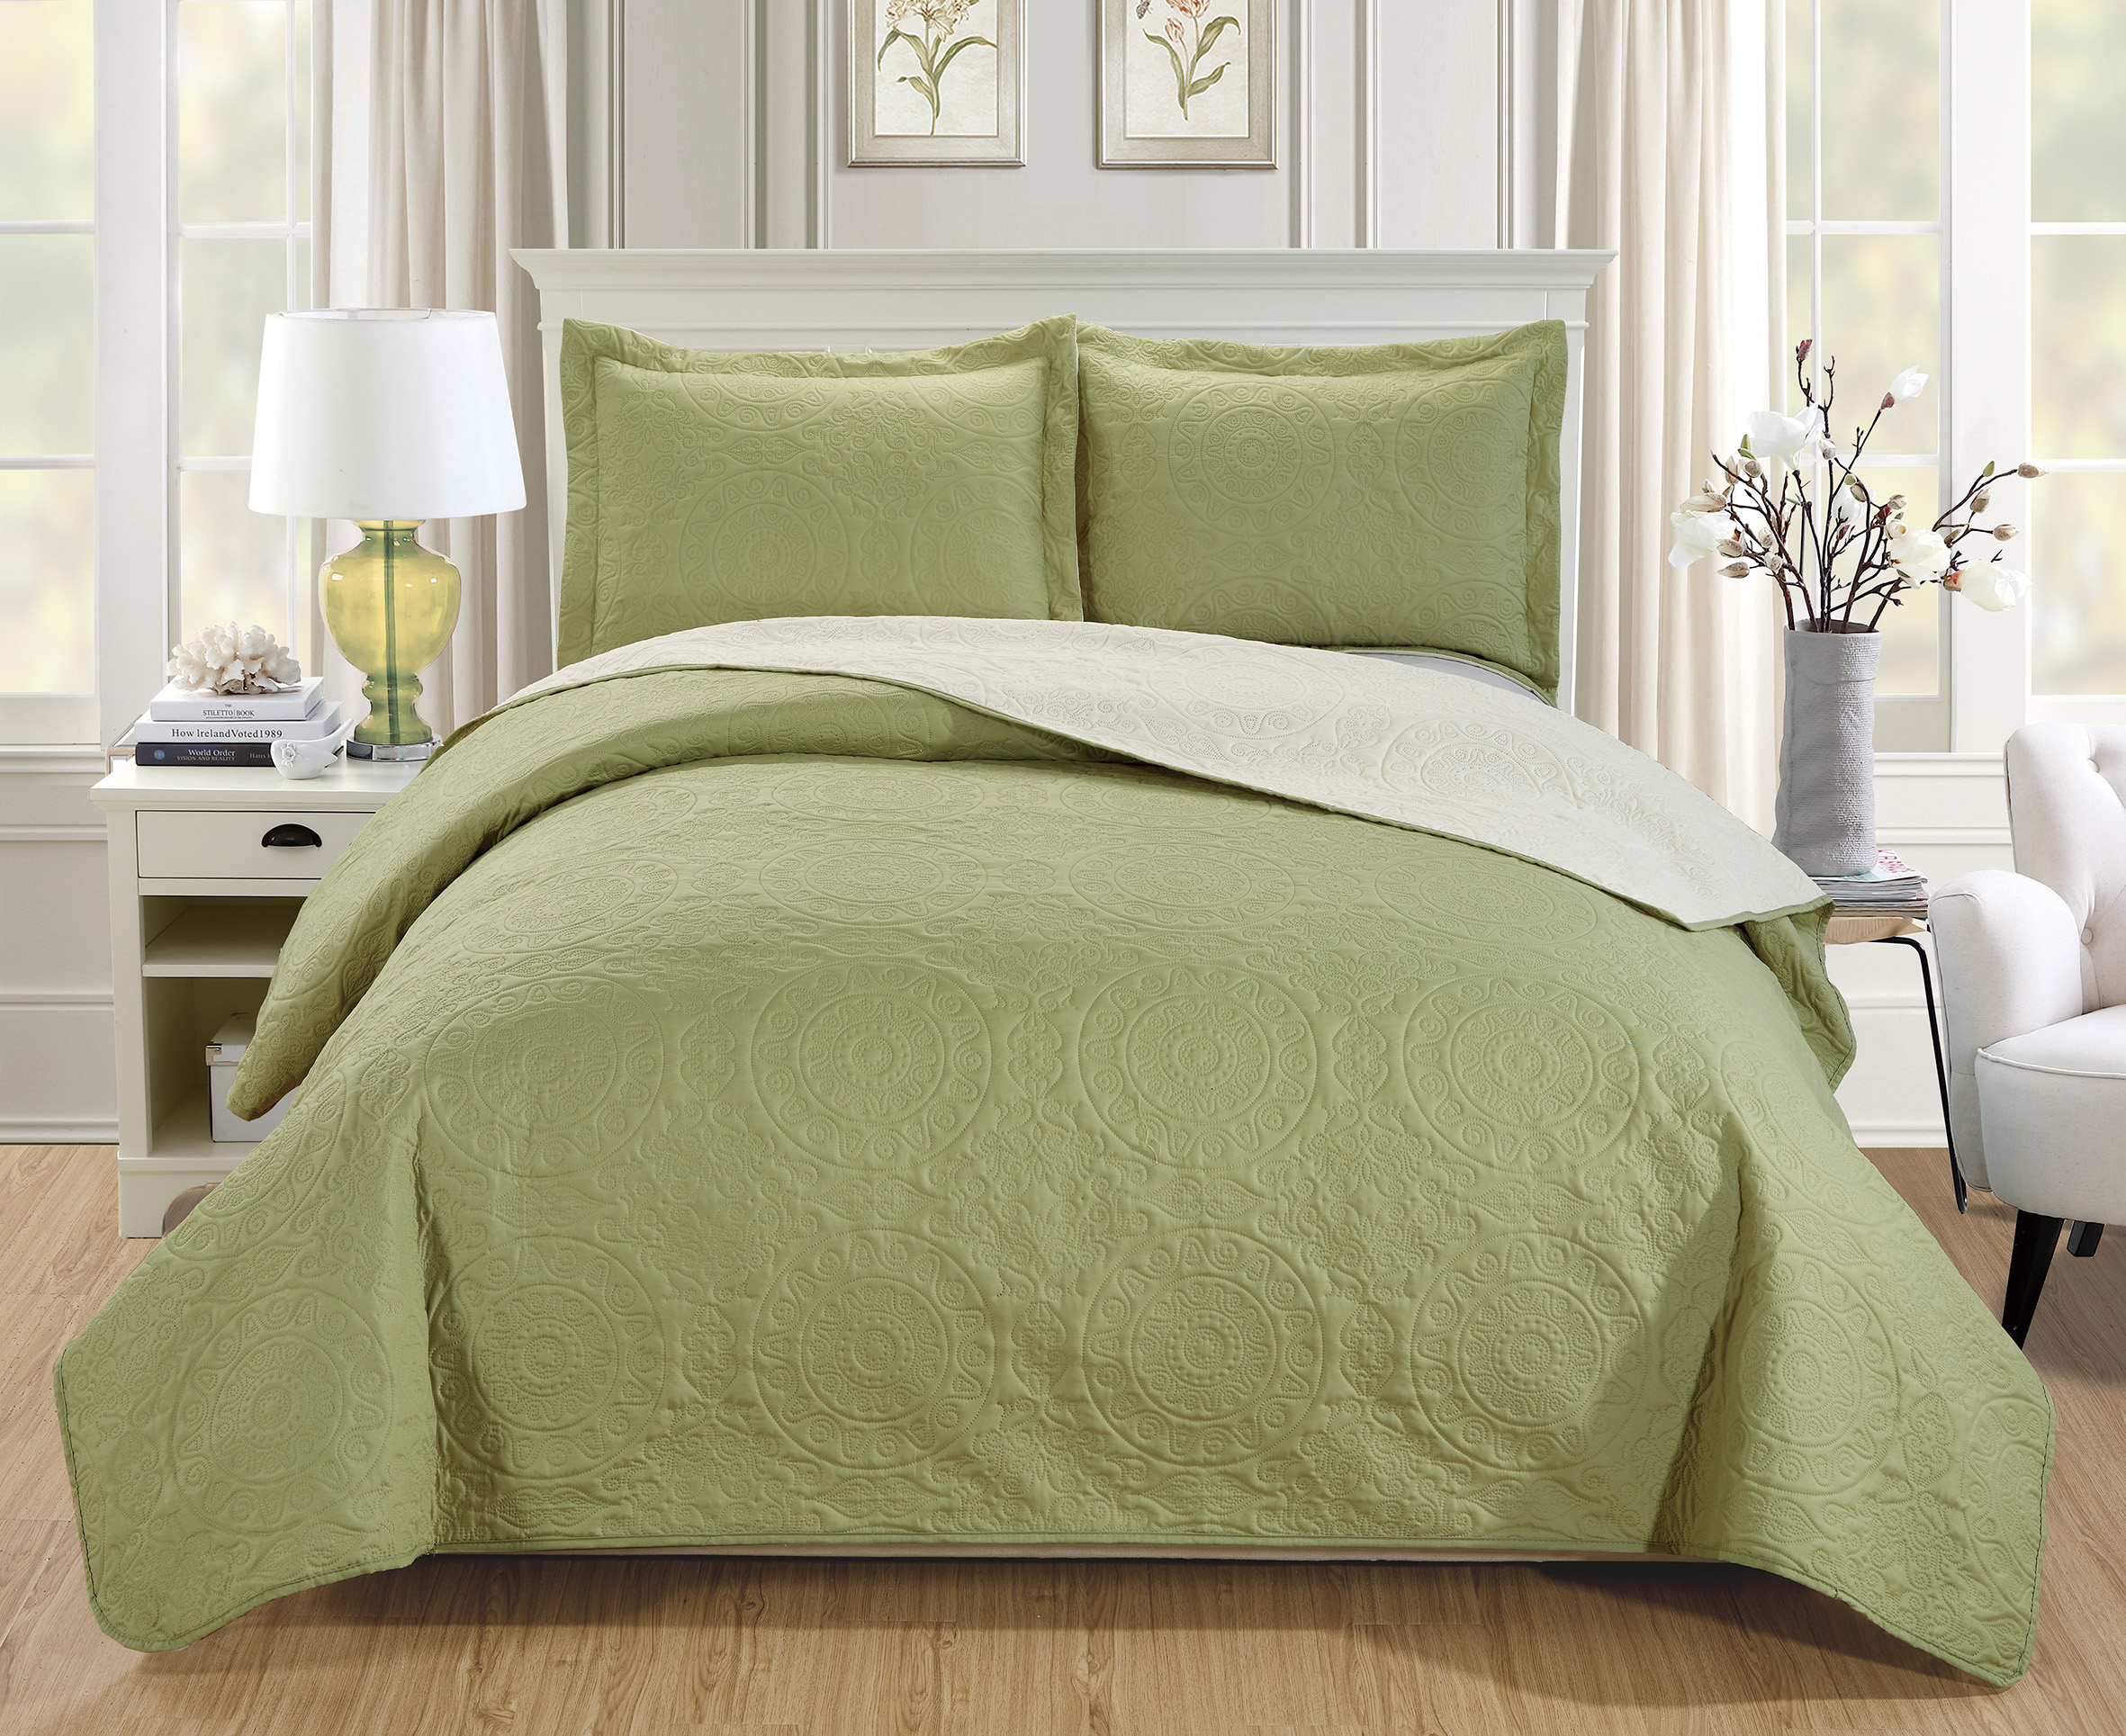 Woven-Trends-Medallion-3PC-Luxury-Comforter-Quilt-Bed-Set-Reversible-Bedspread